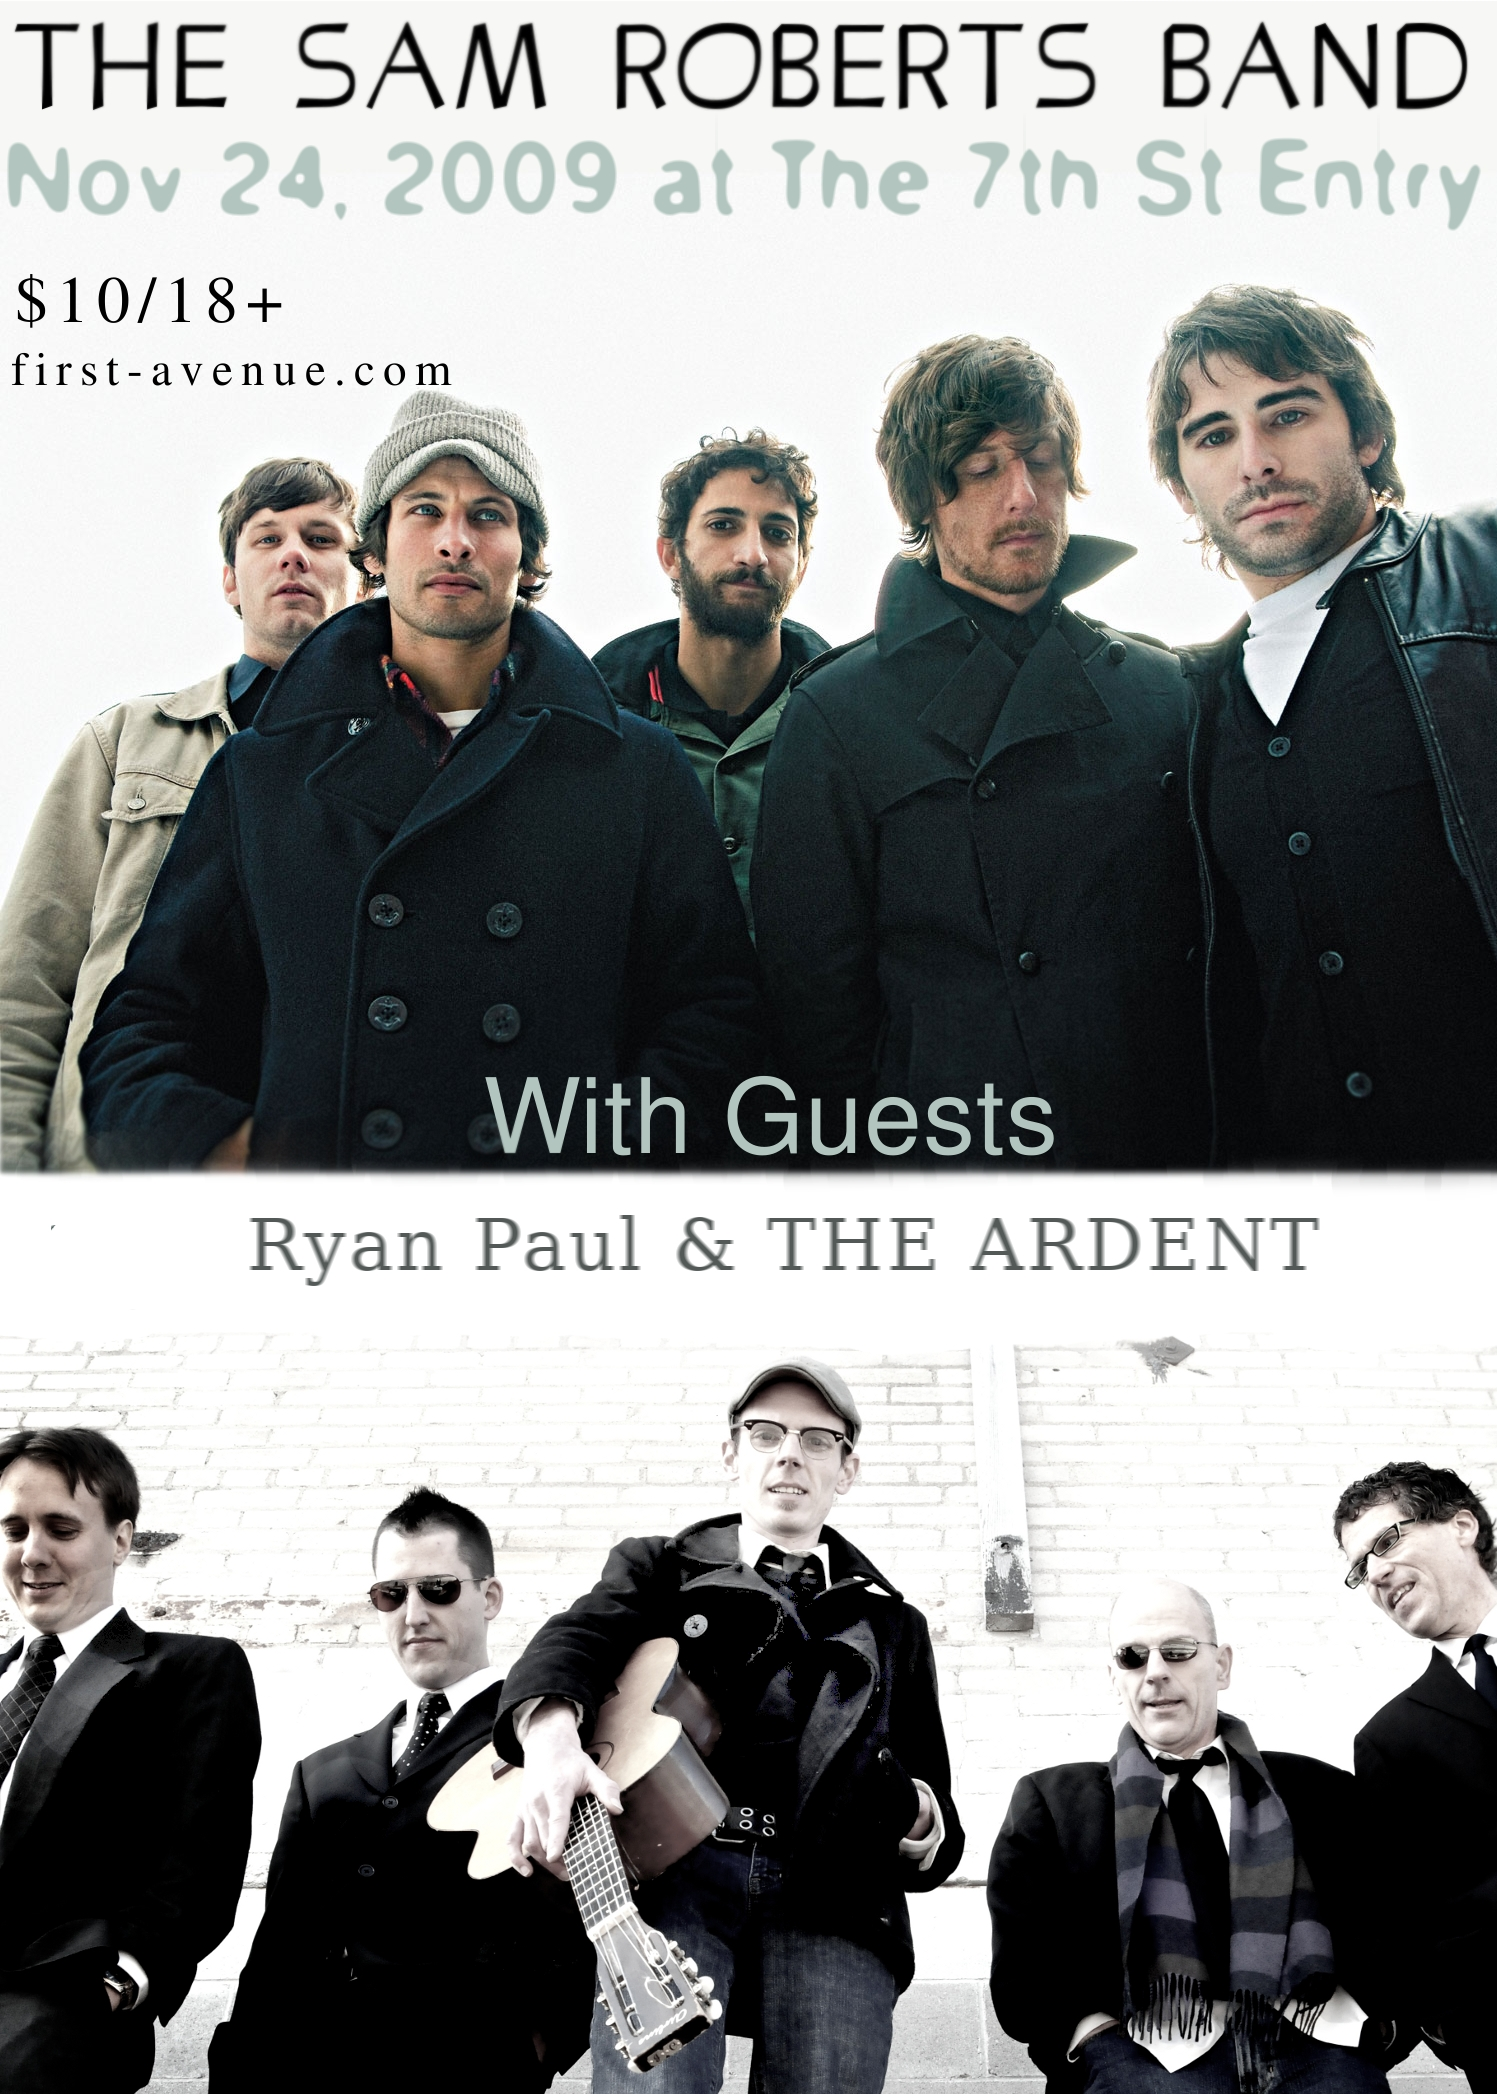 Sam Roberts with Ryan Paul & THE ARDENT at 7th St. Entry. Minneapolis